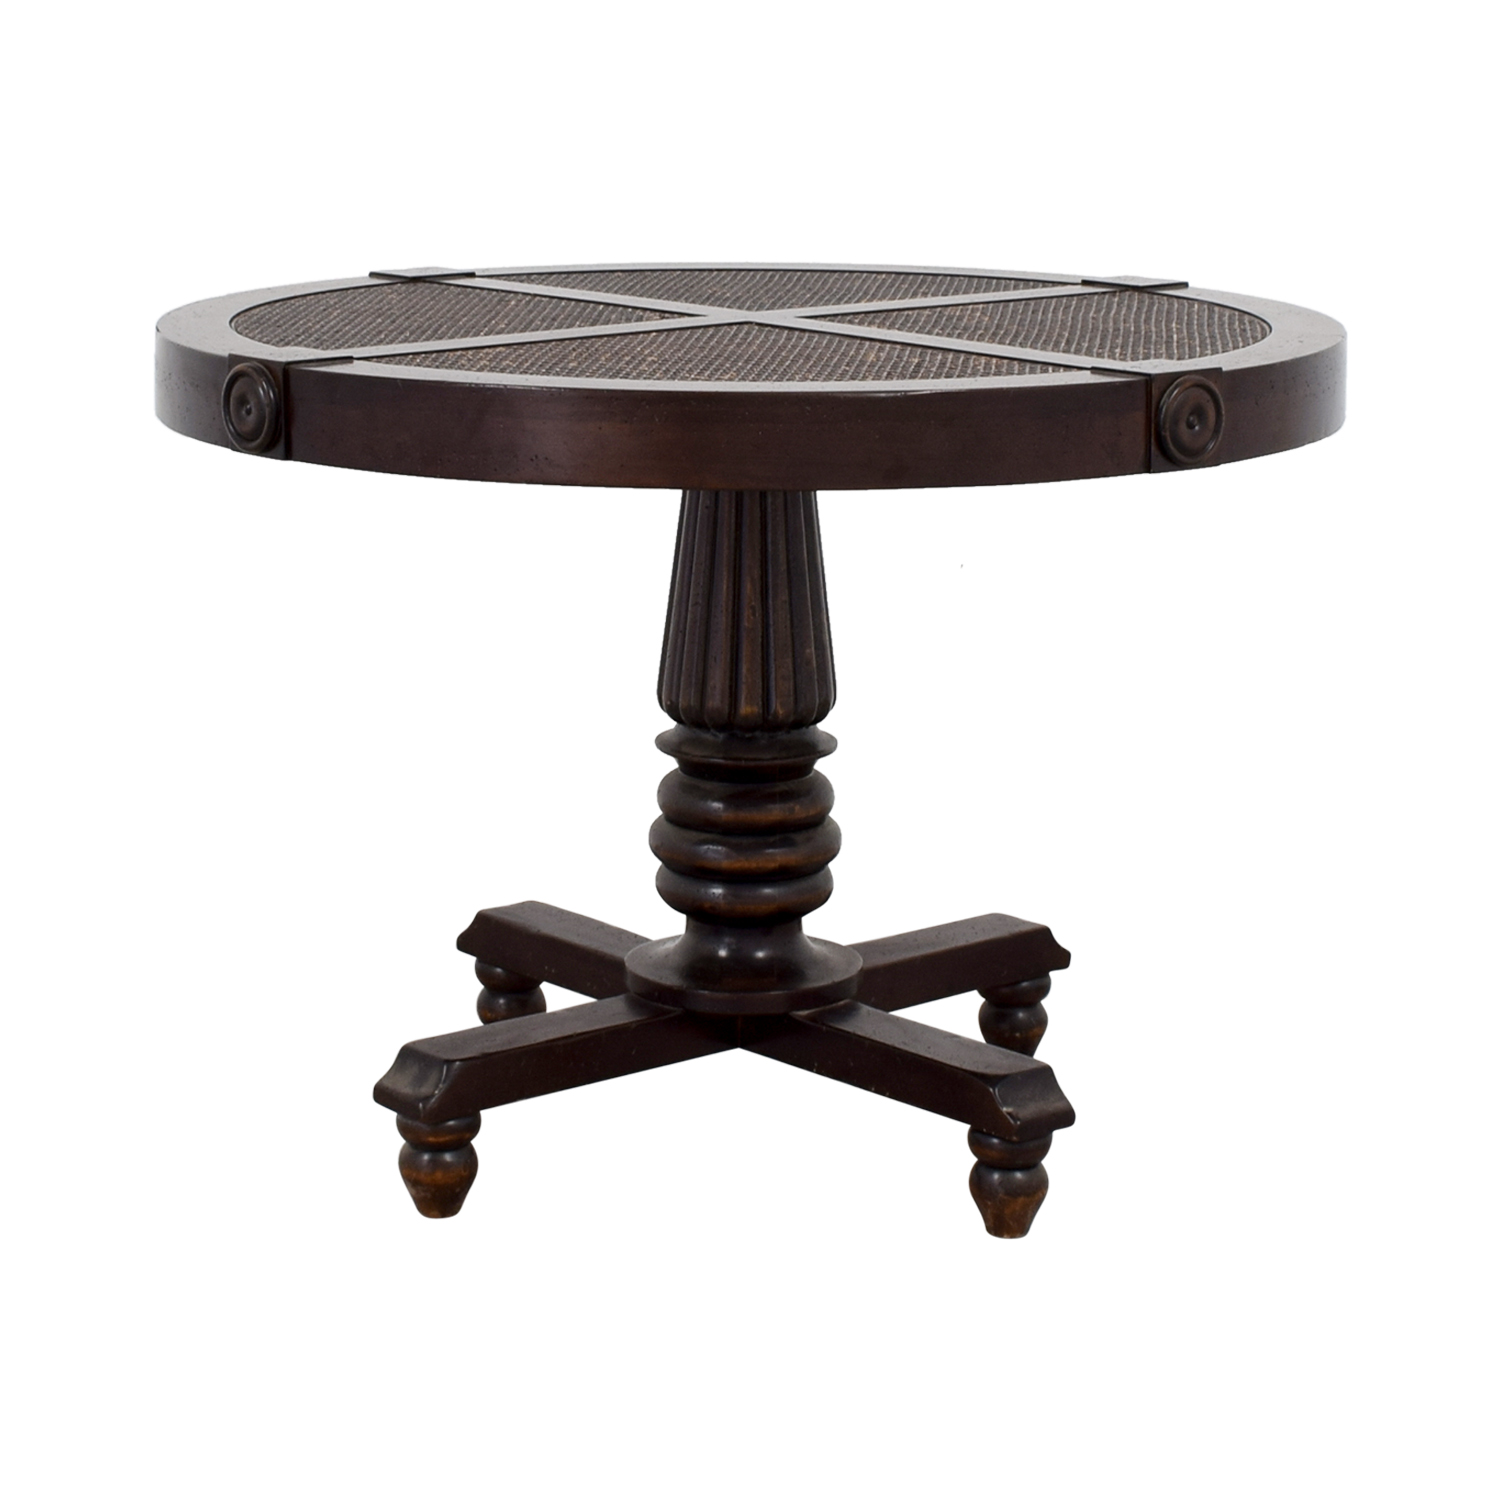 Furniture Masters Furniture Masters Wood Cane Weave Dining Table second hand